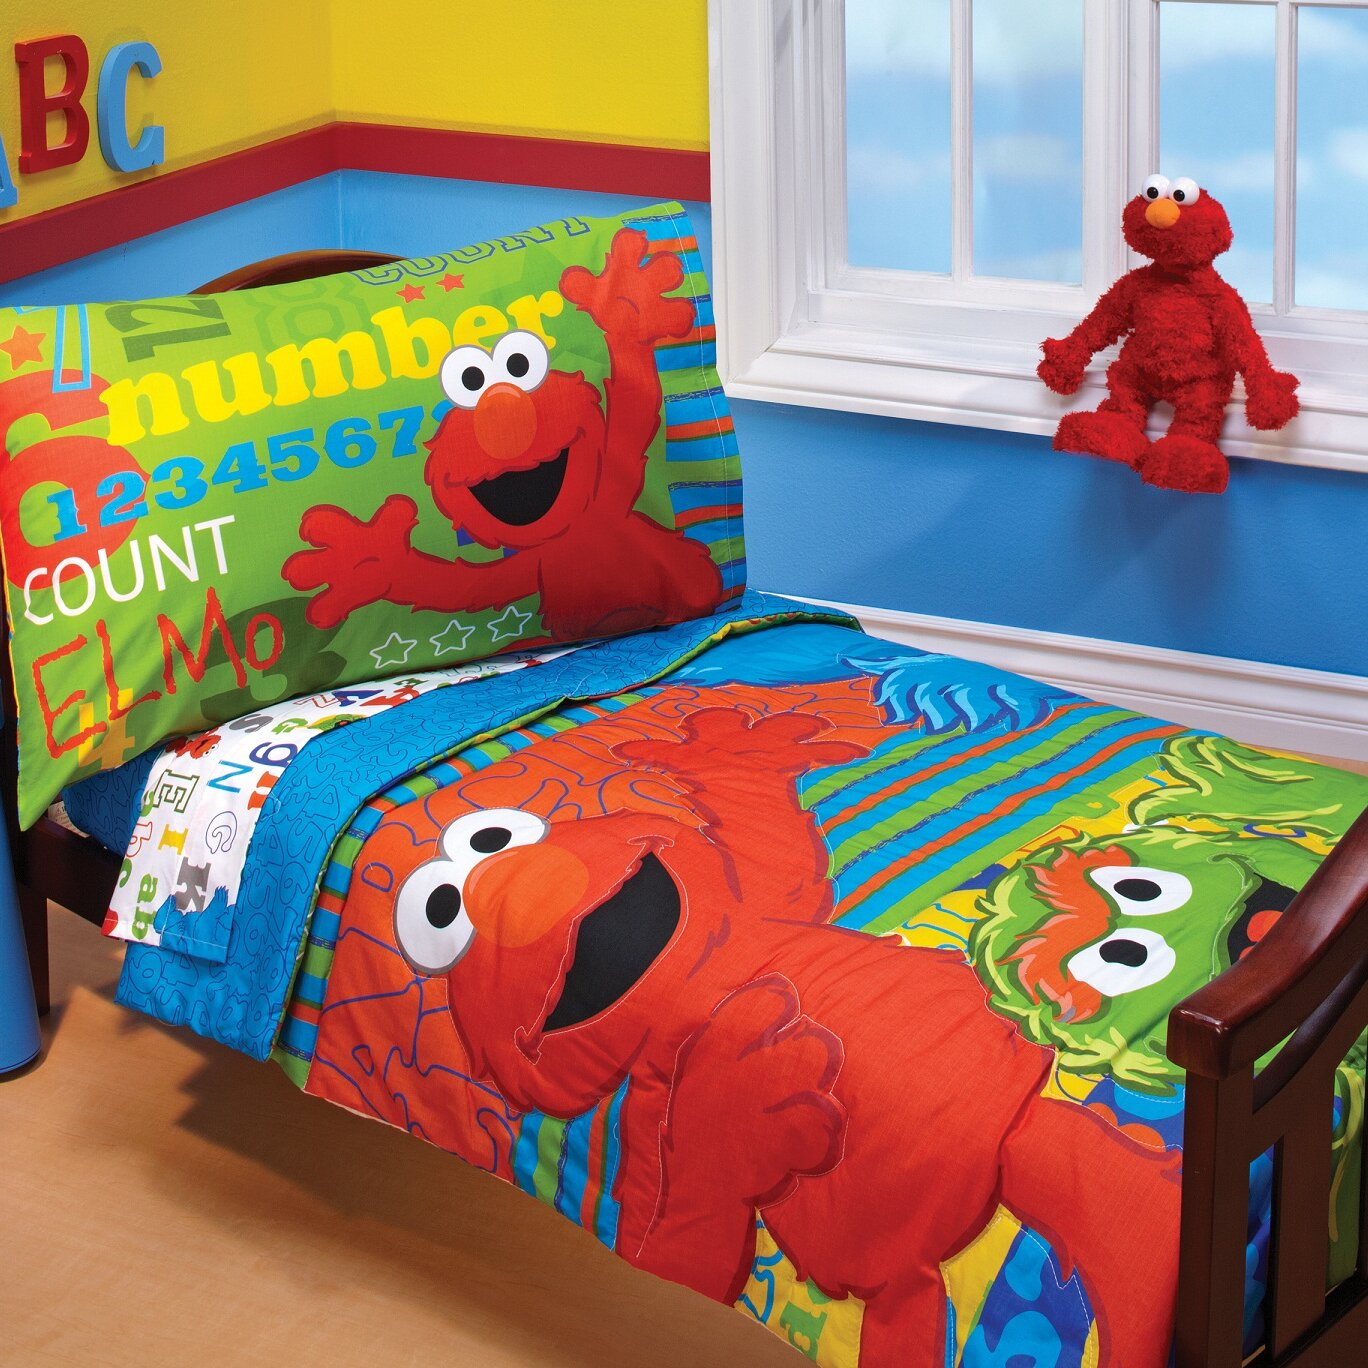 Sesame Street Bedroom Decorations Sesame Street Abc 123 4 Piece Toddler Bedding Set Reviews Wayfair